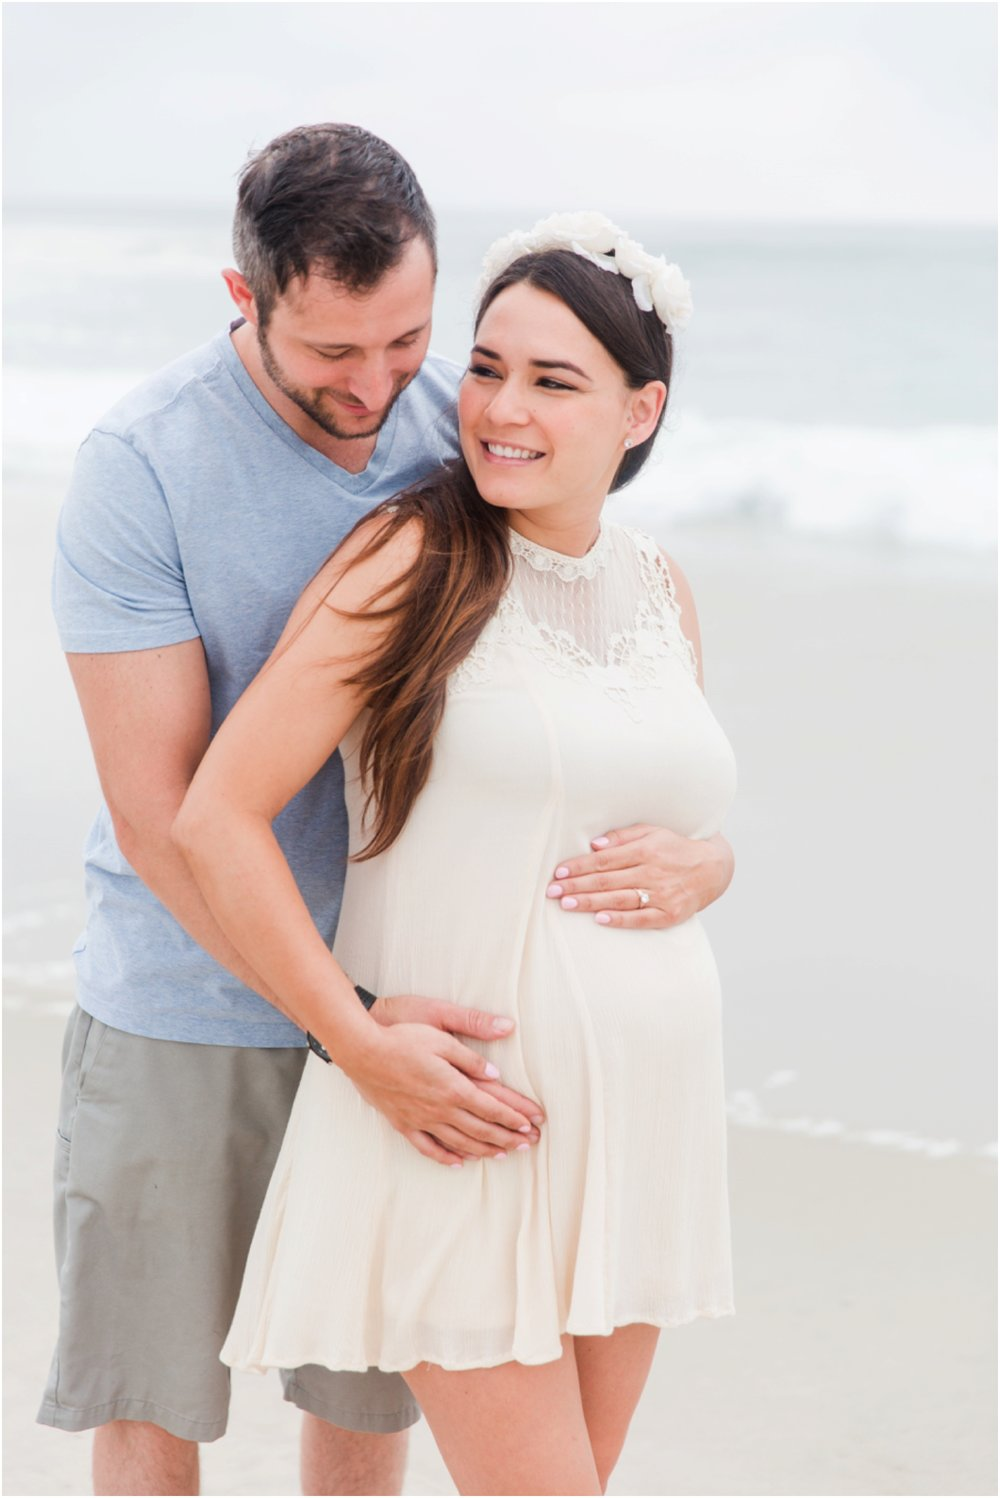 Natural light maternity portraits by Briana Calderon Photography based in the Greater Seattle & Tacoma, WA_0777.jpg